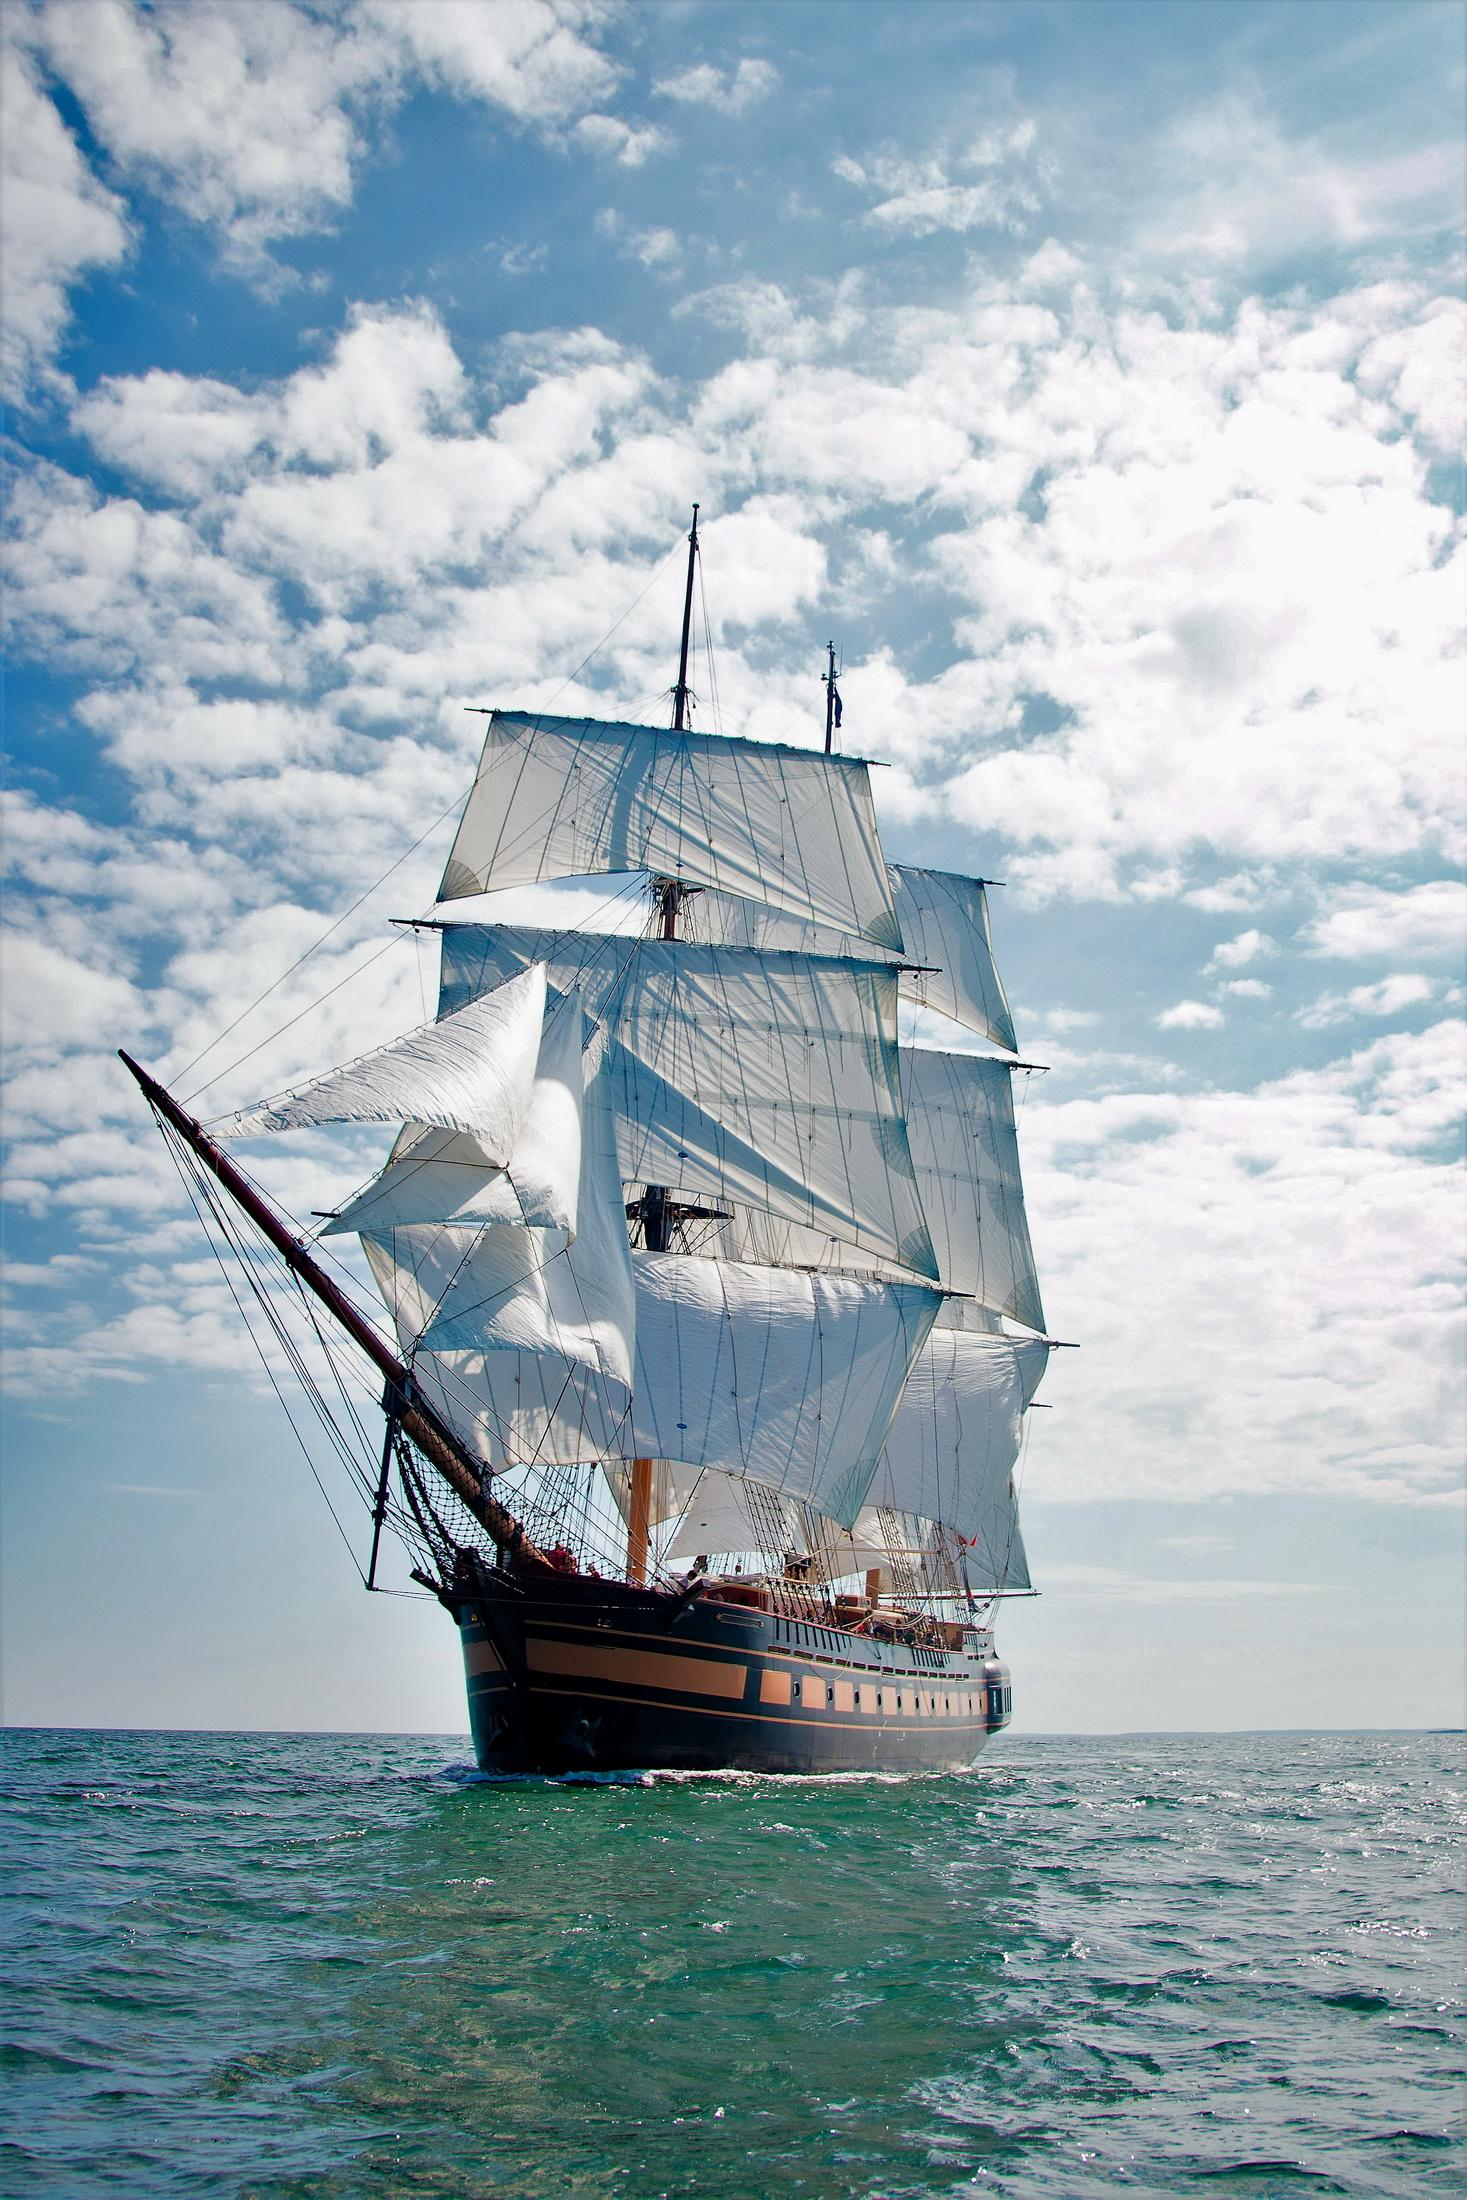 Oliver Hazard Perry, photo credit: Ted Neighbors